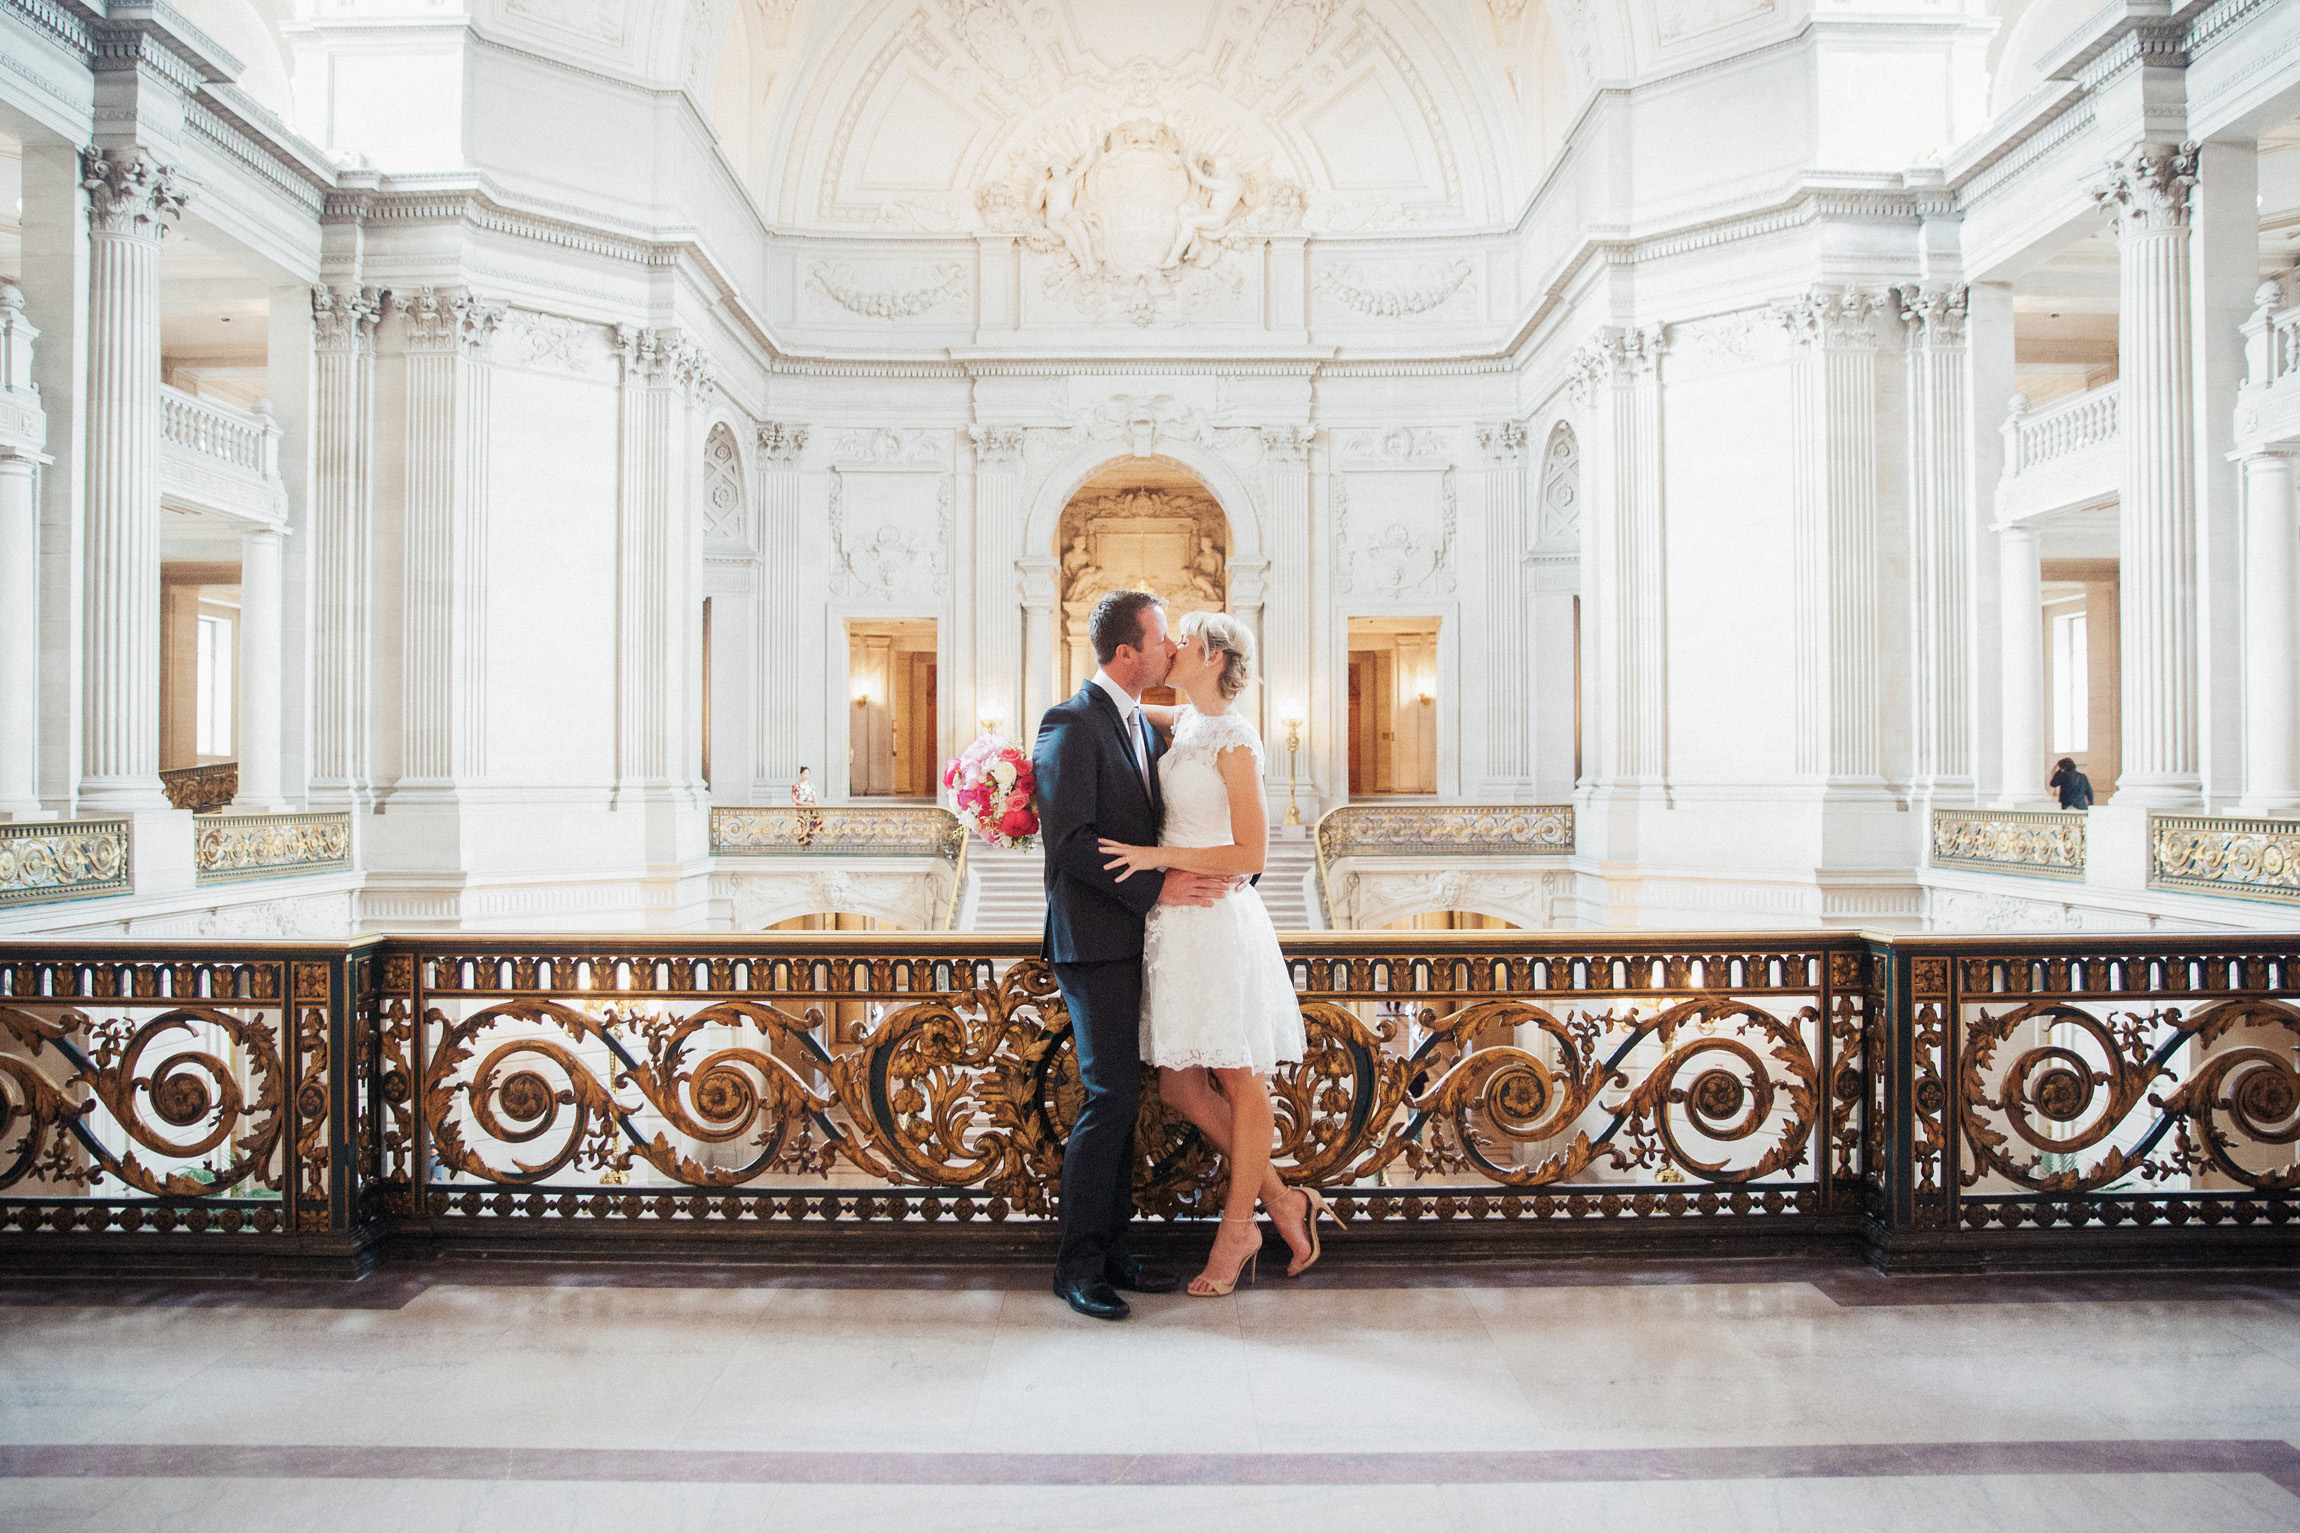 030_janaeshieldsphotography_sanfrancisco_cityhall_weddings.jpg